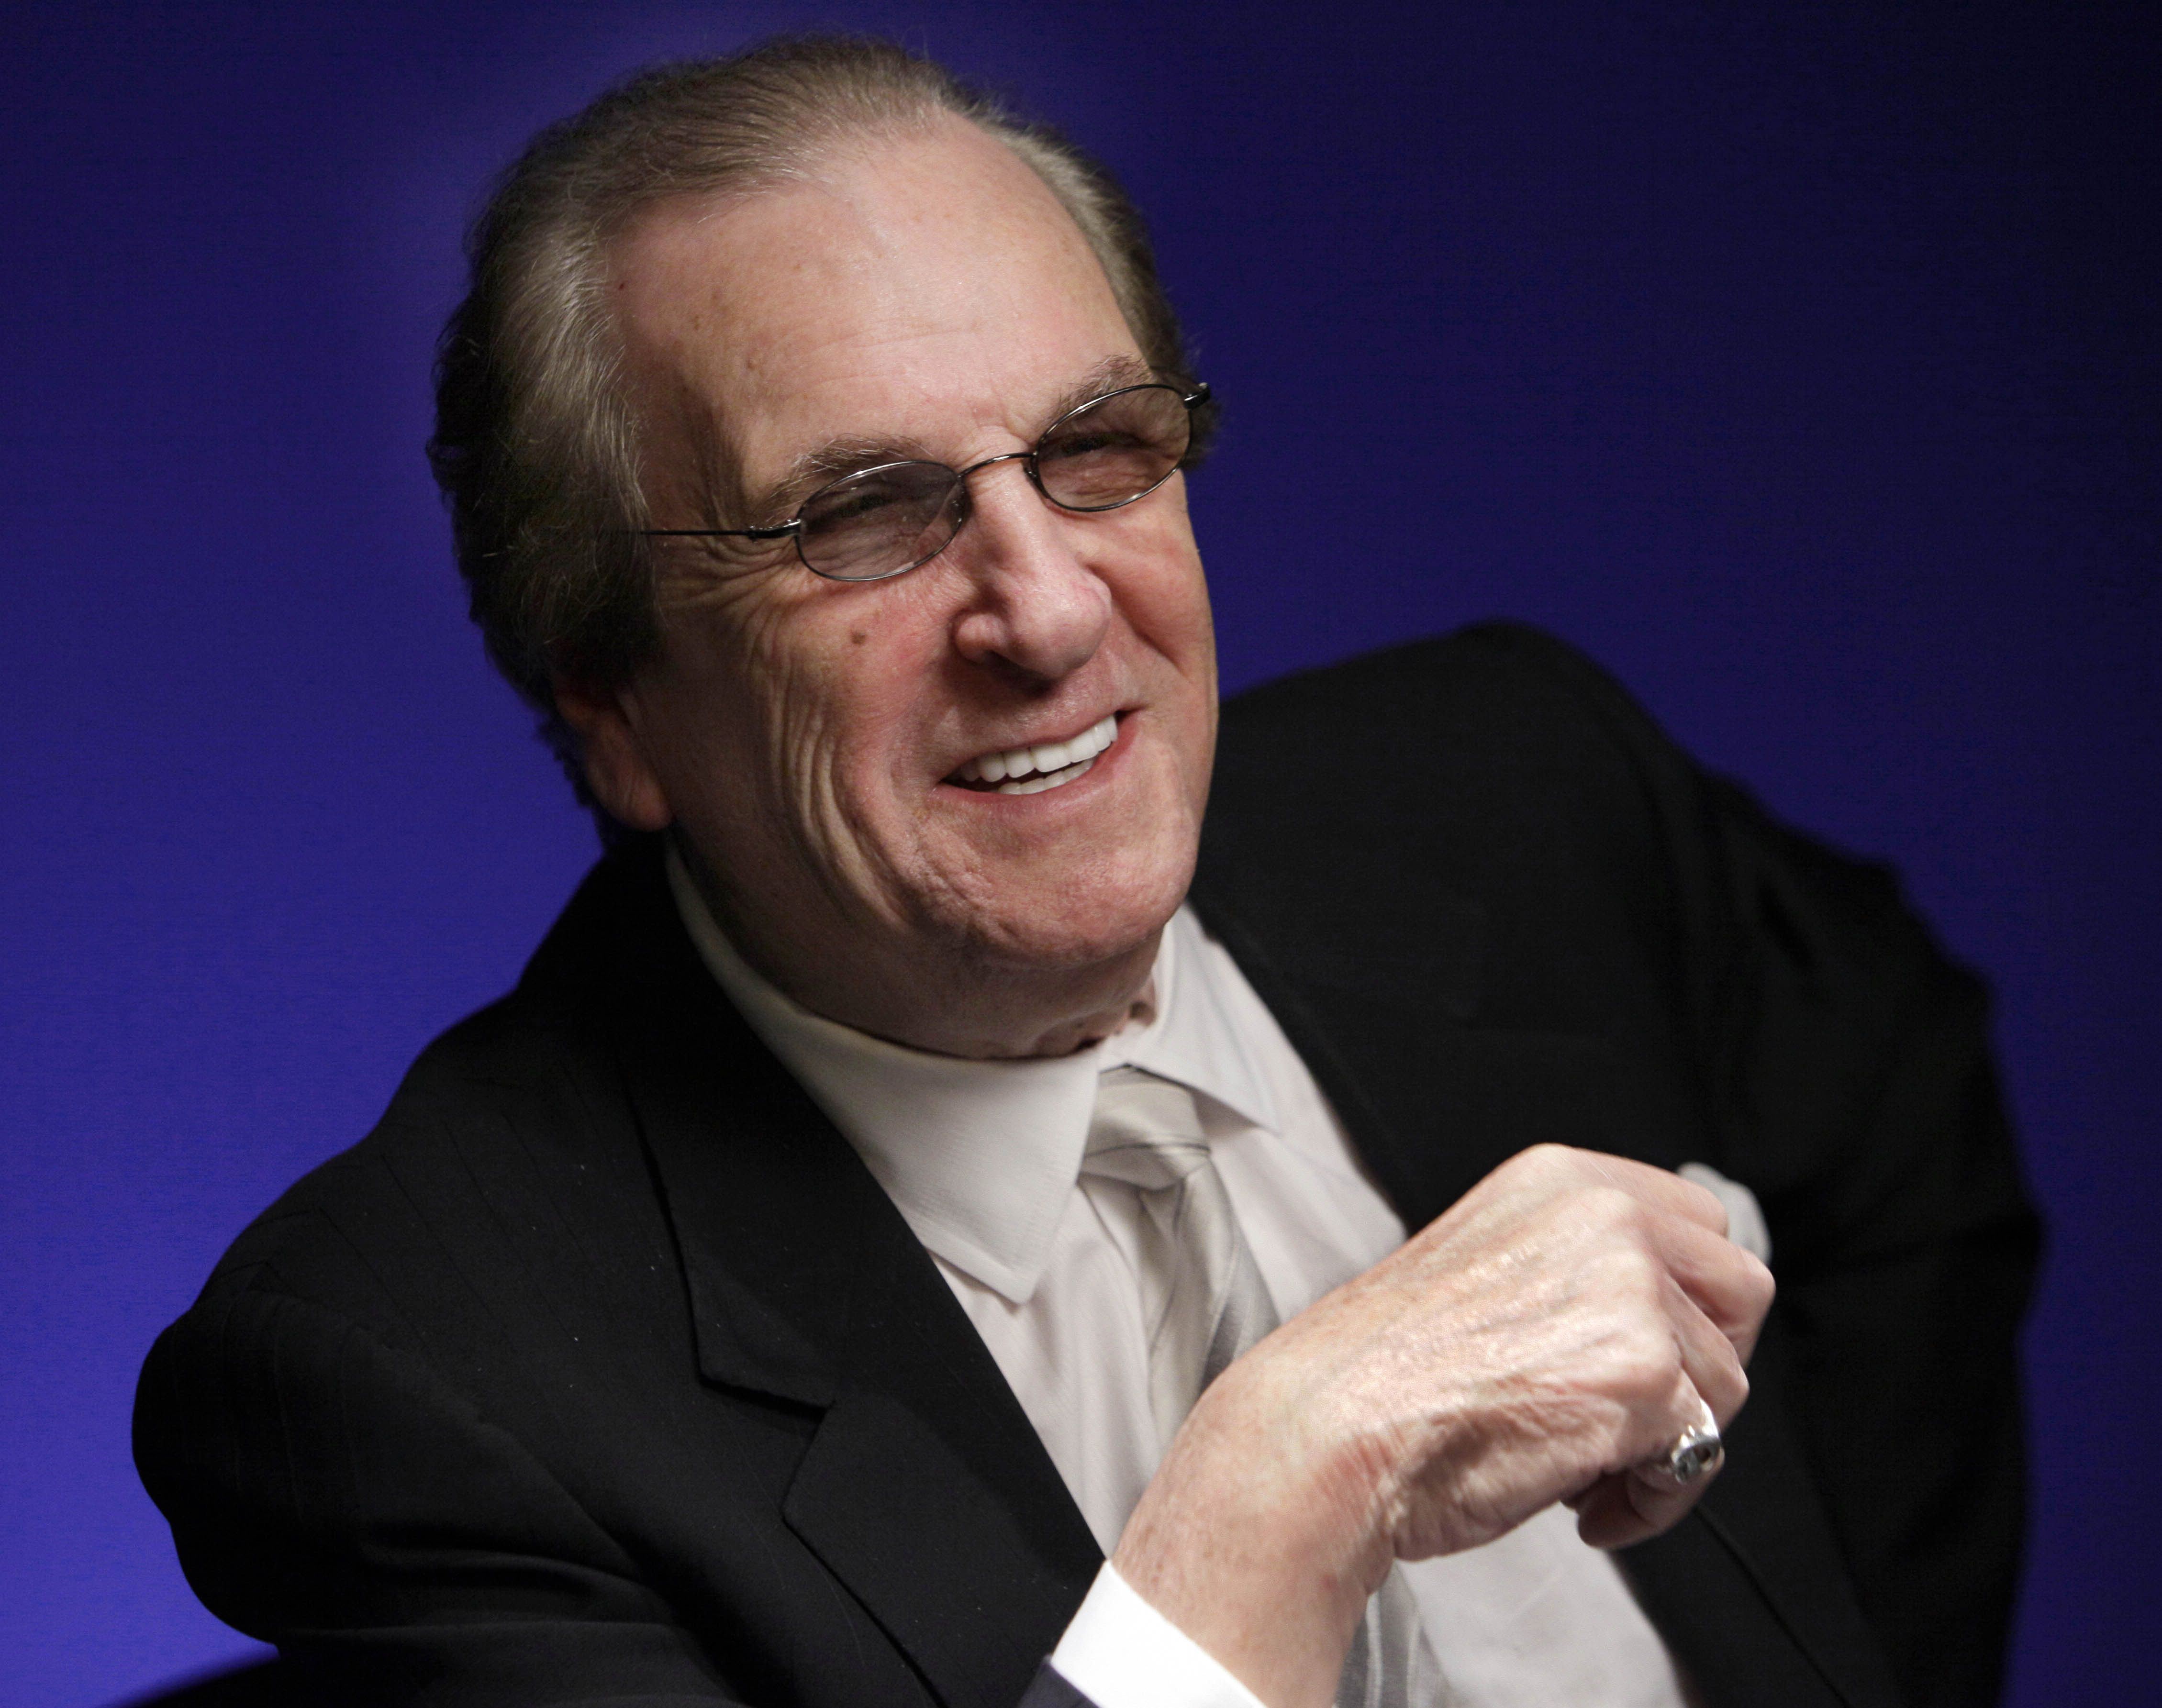 danny aiello - photo #16